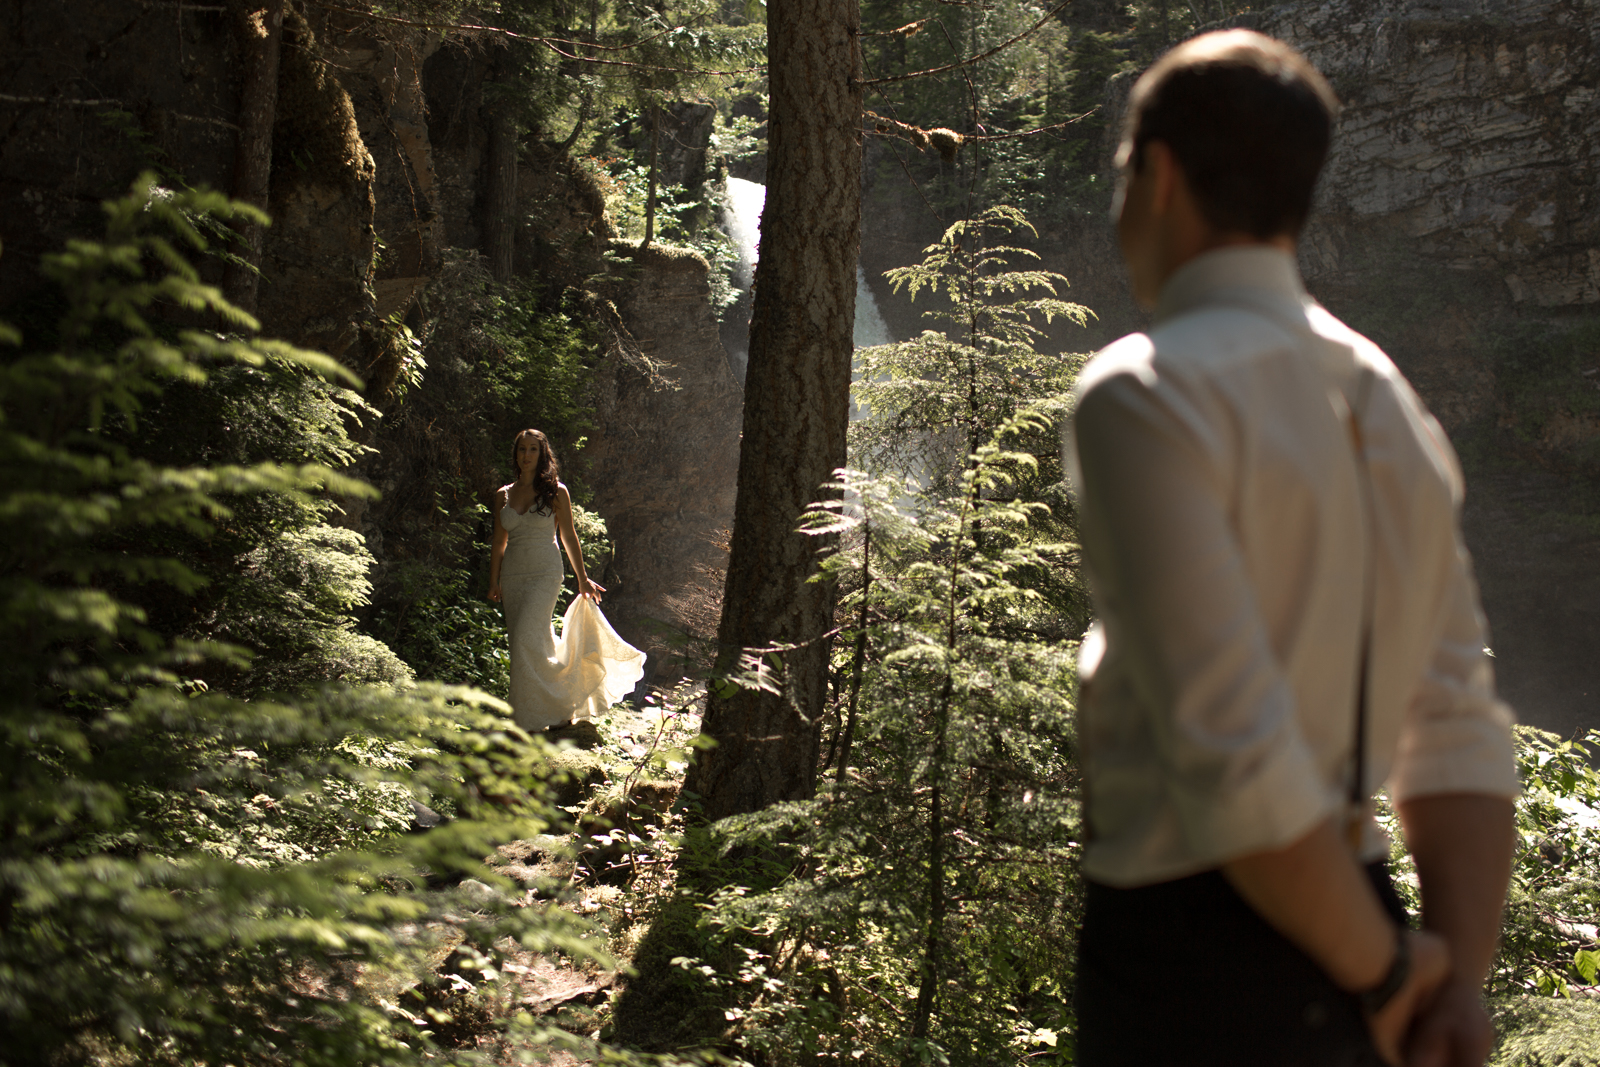 33Andrew_Pavlidis_Photography_Jess_and_Tristan_Revelstoke_Elopement_Calgary_Wedding_Photographer-8189